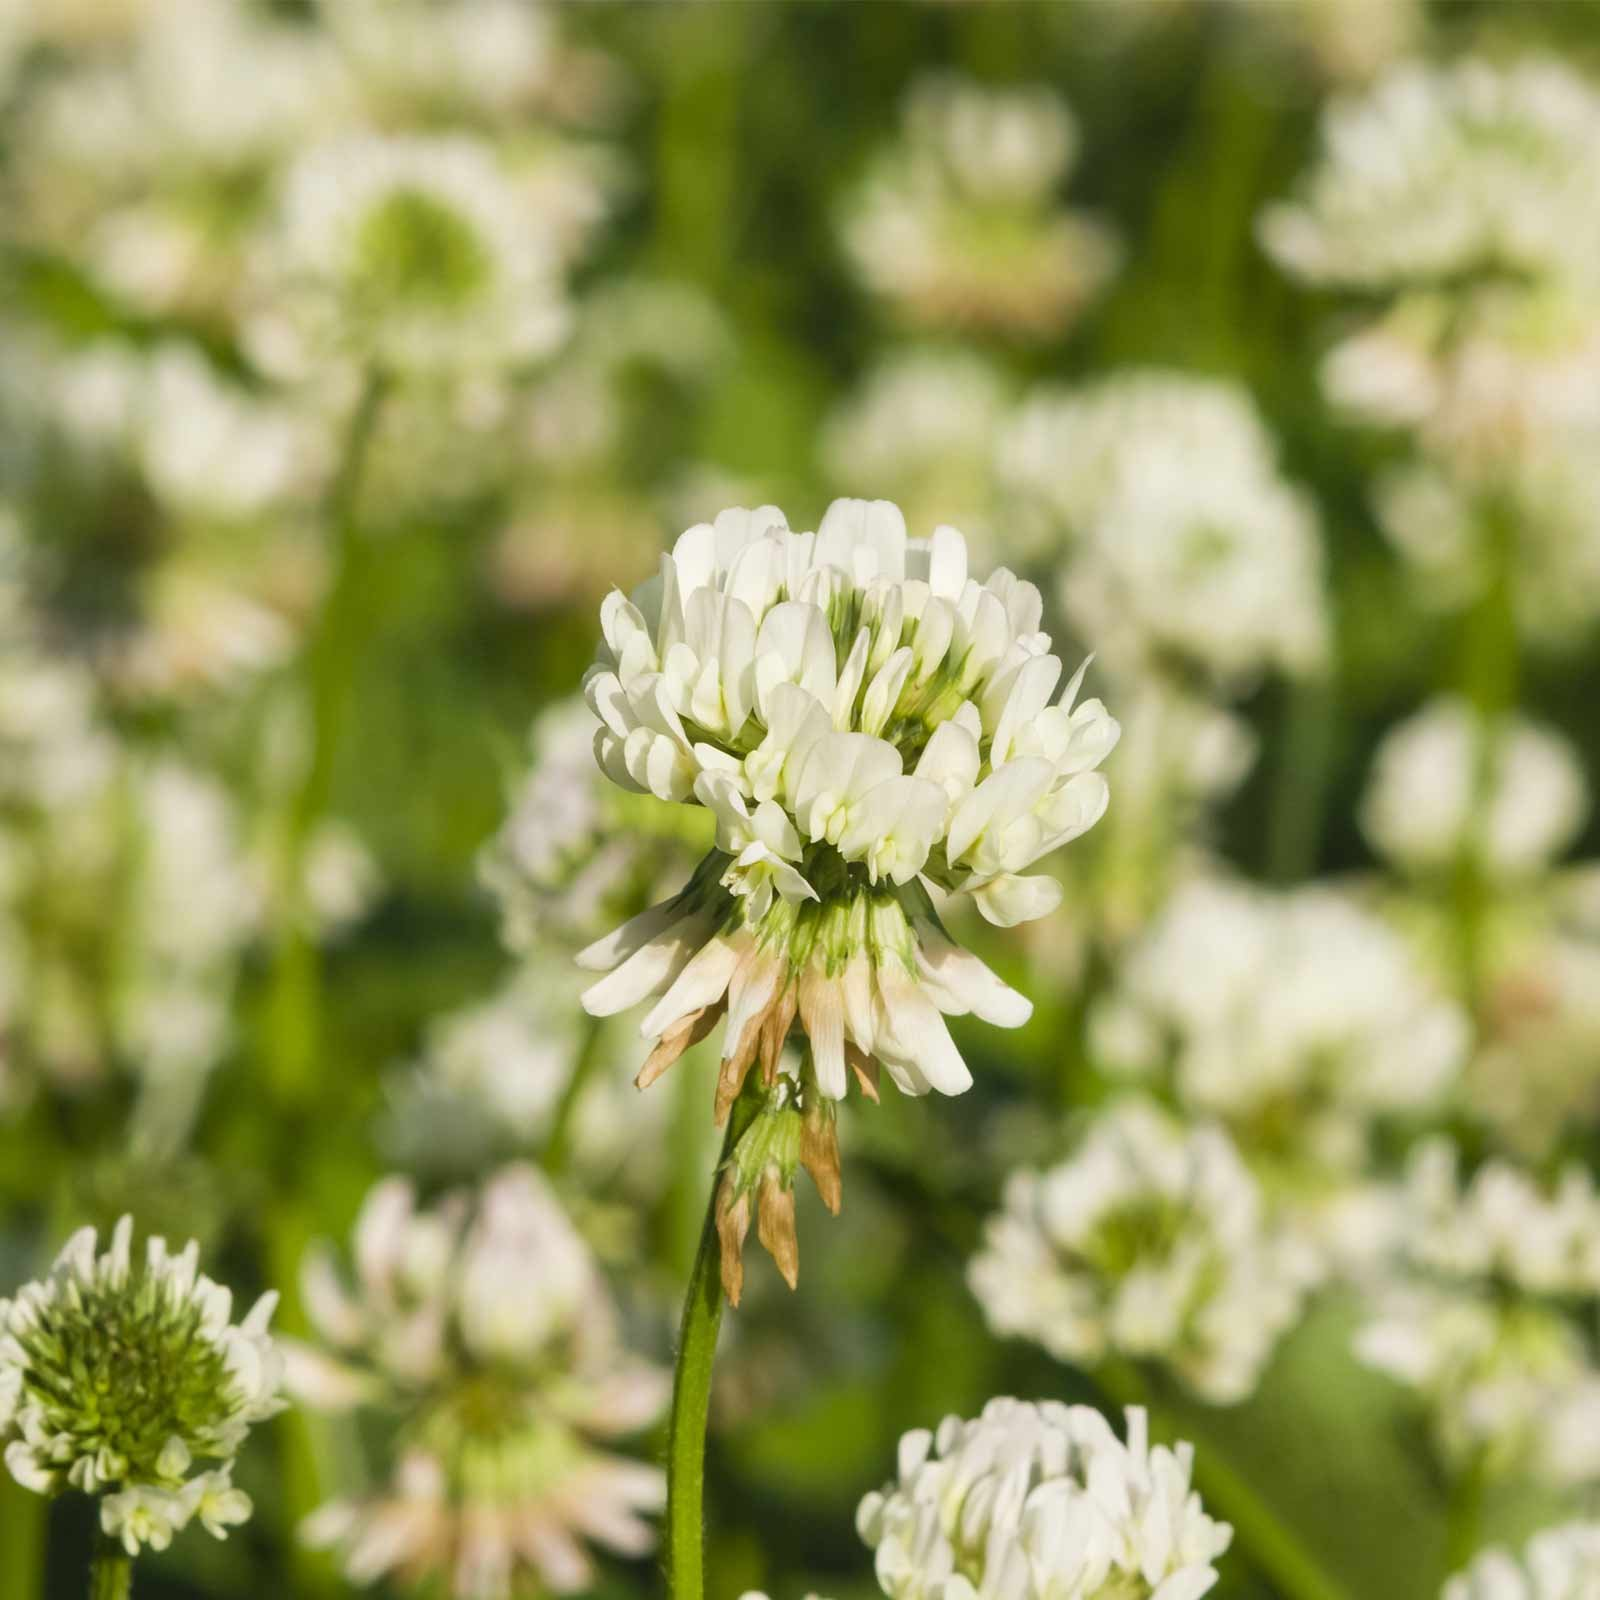 White Dutch Clover Seeds - 5 Lb - Lawn, Pasture & Cover Crop Seeds by Mountain Valley Seeds